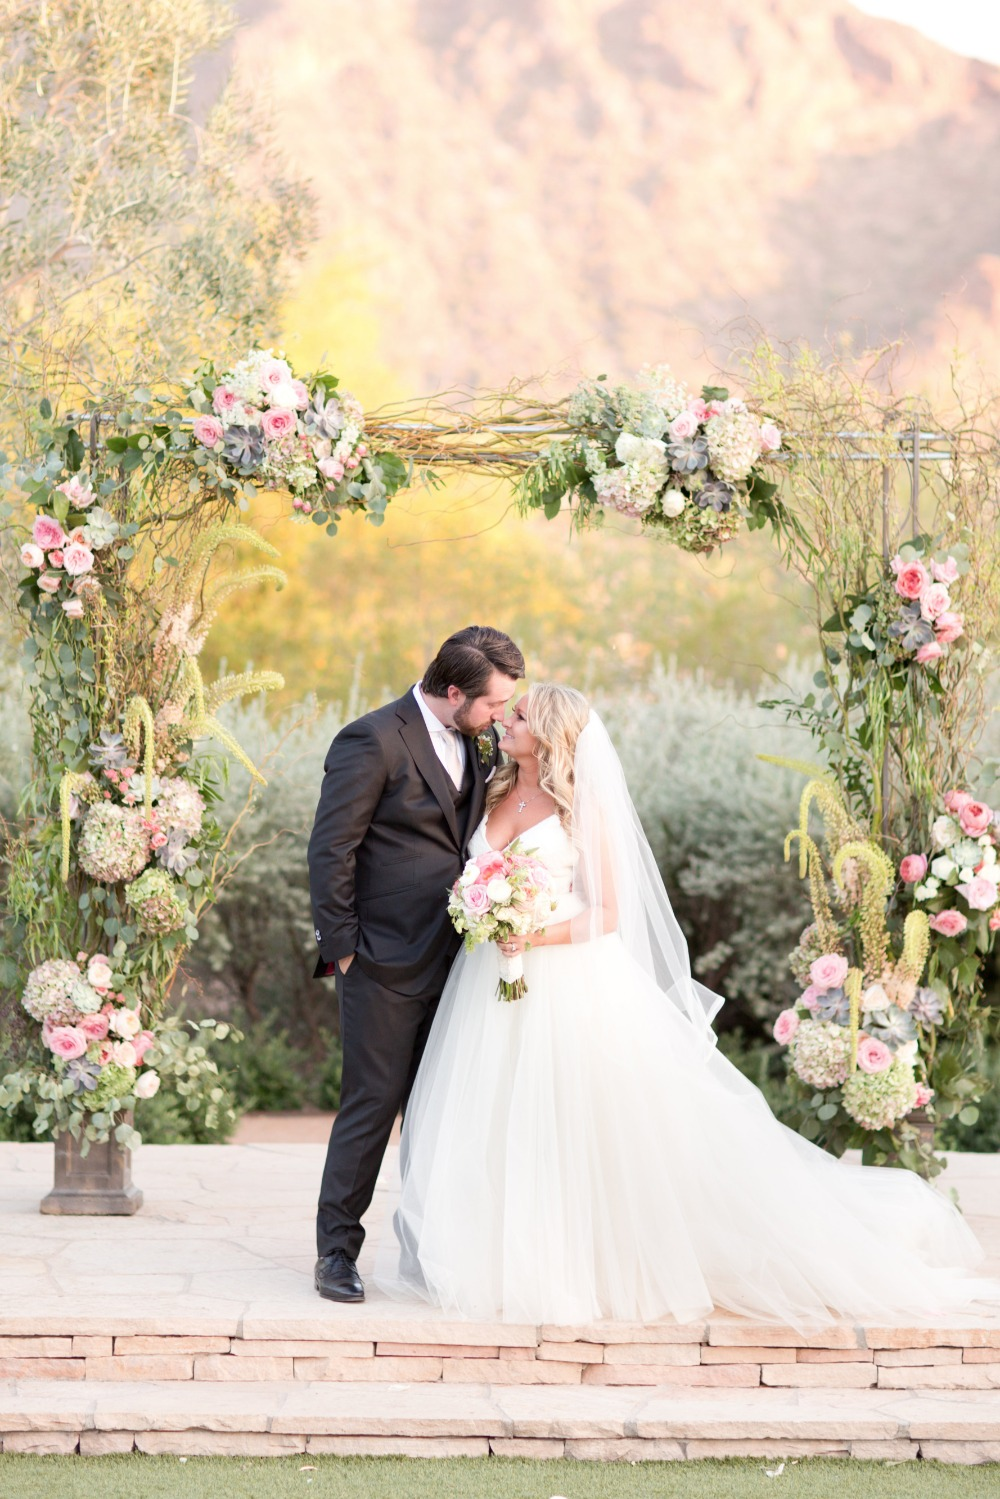 Romantic wedding arbor